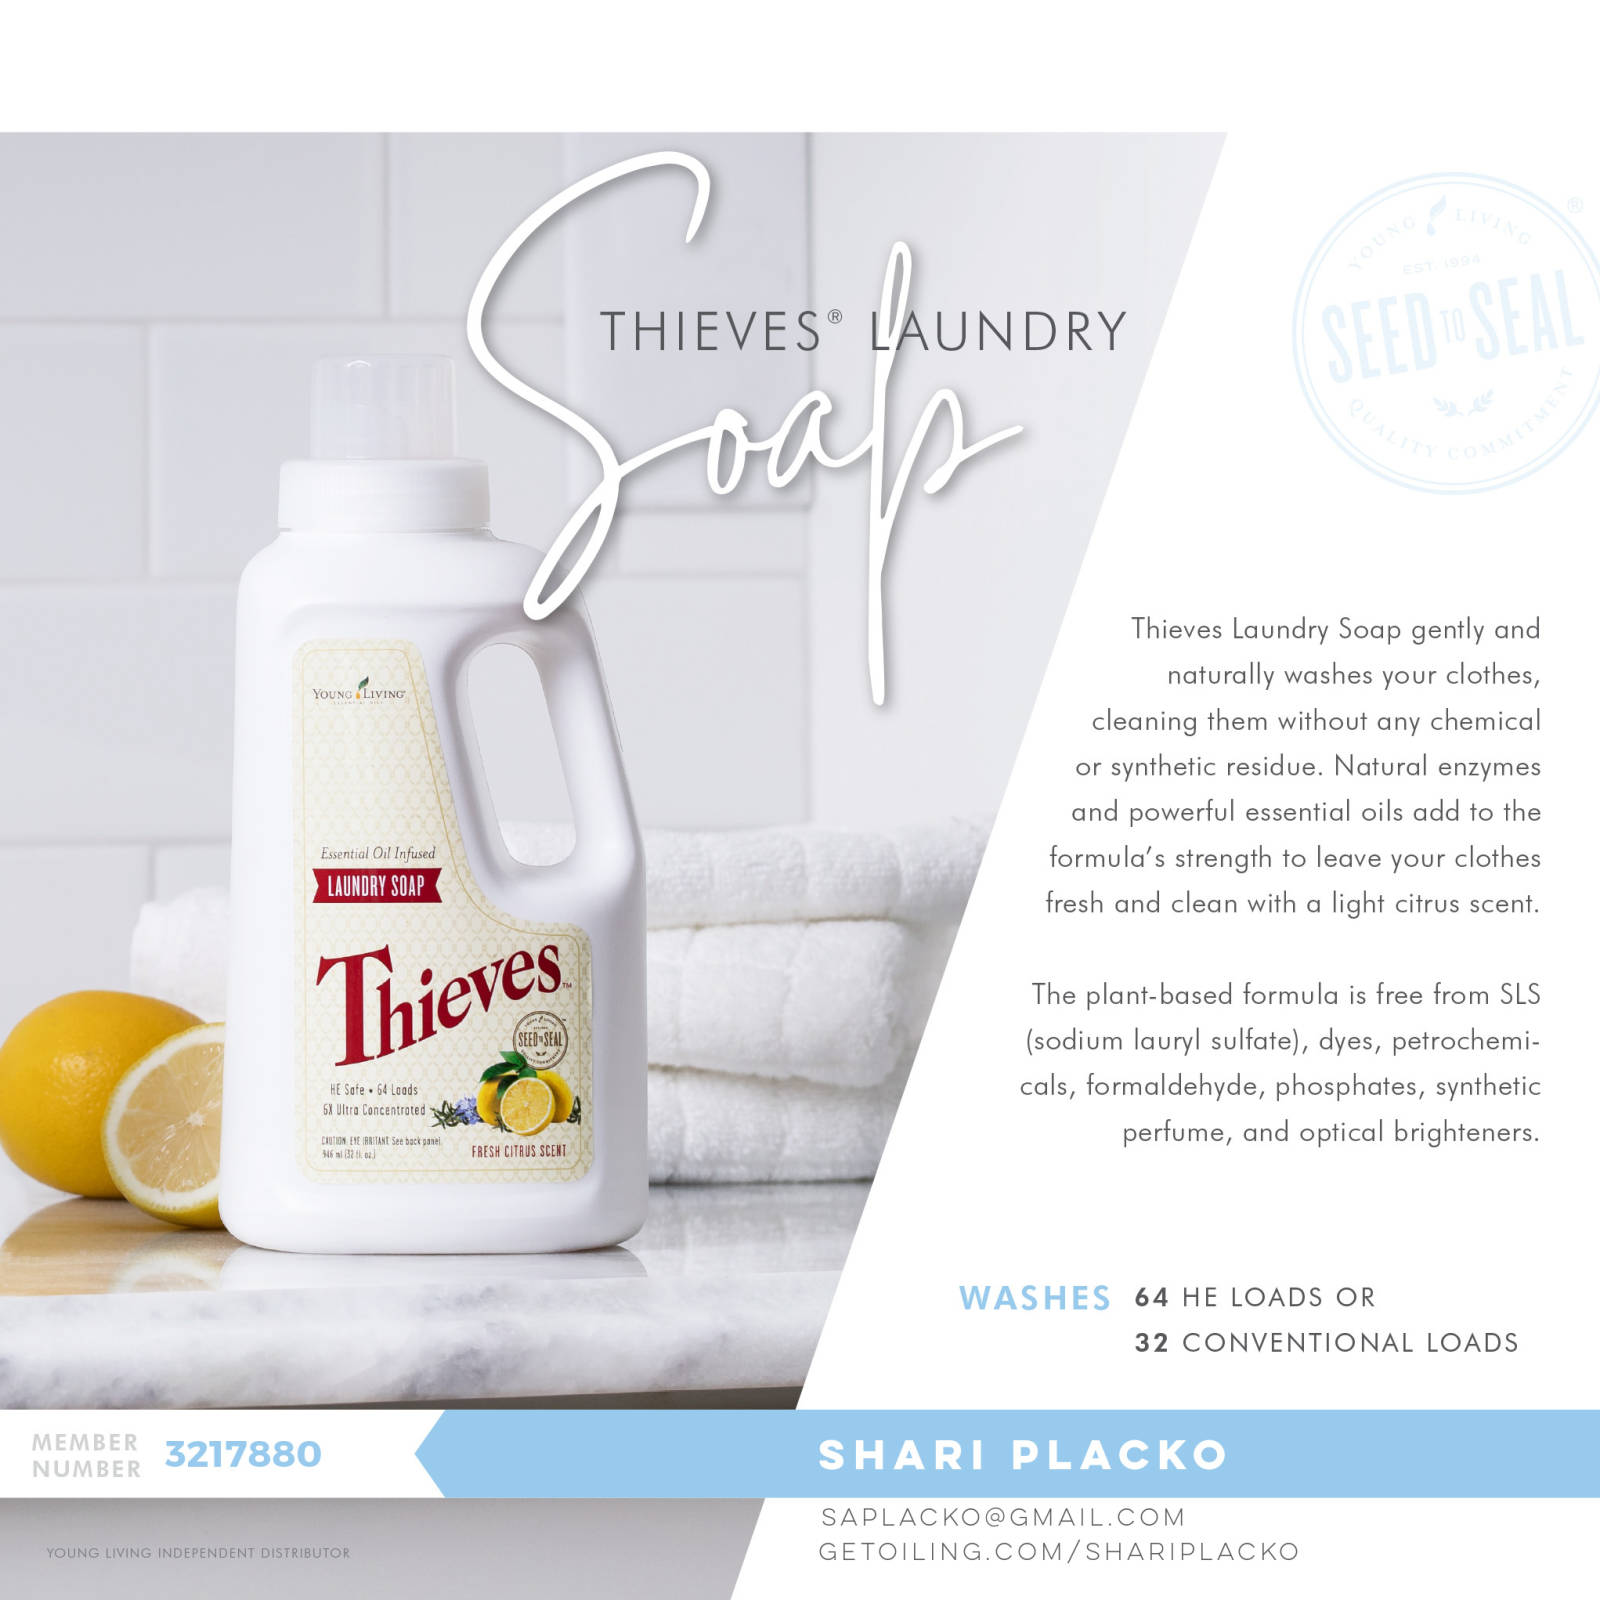 Thieves Laundry